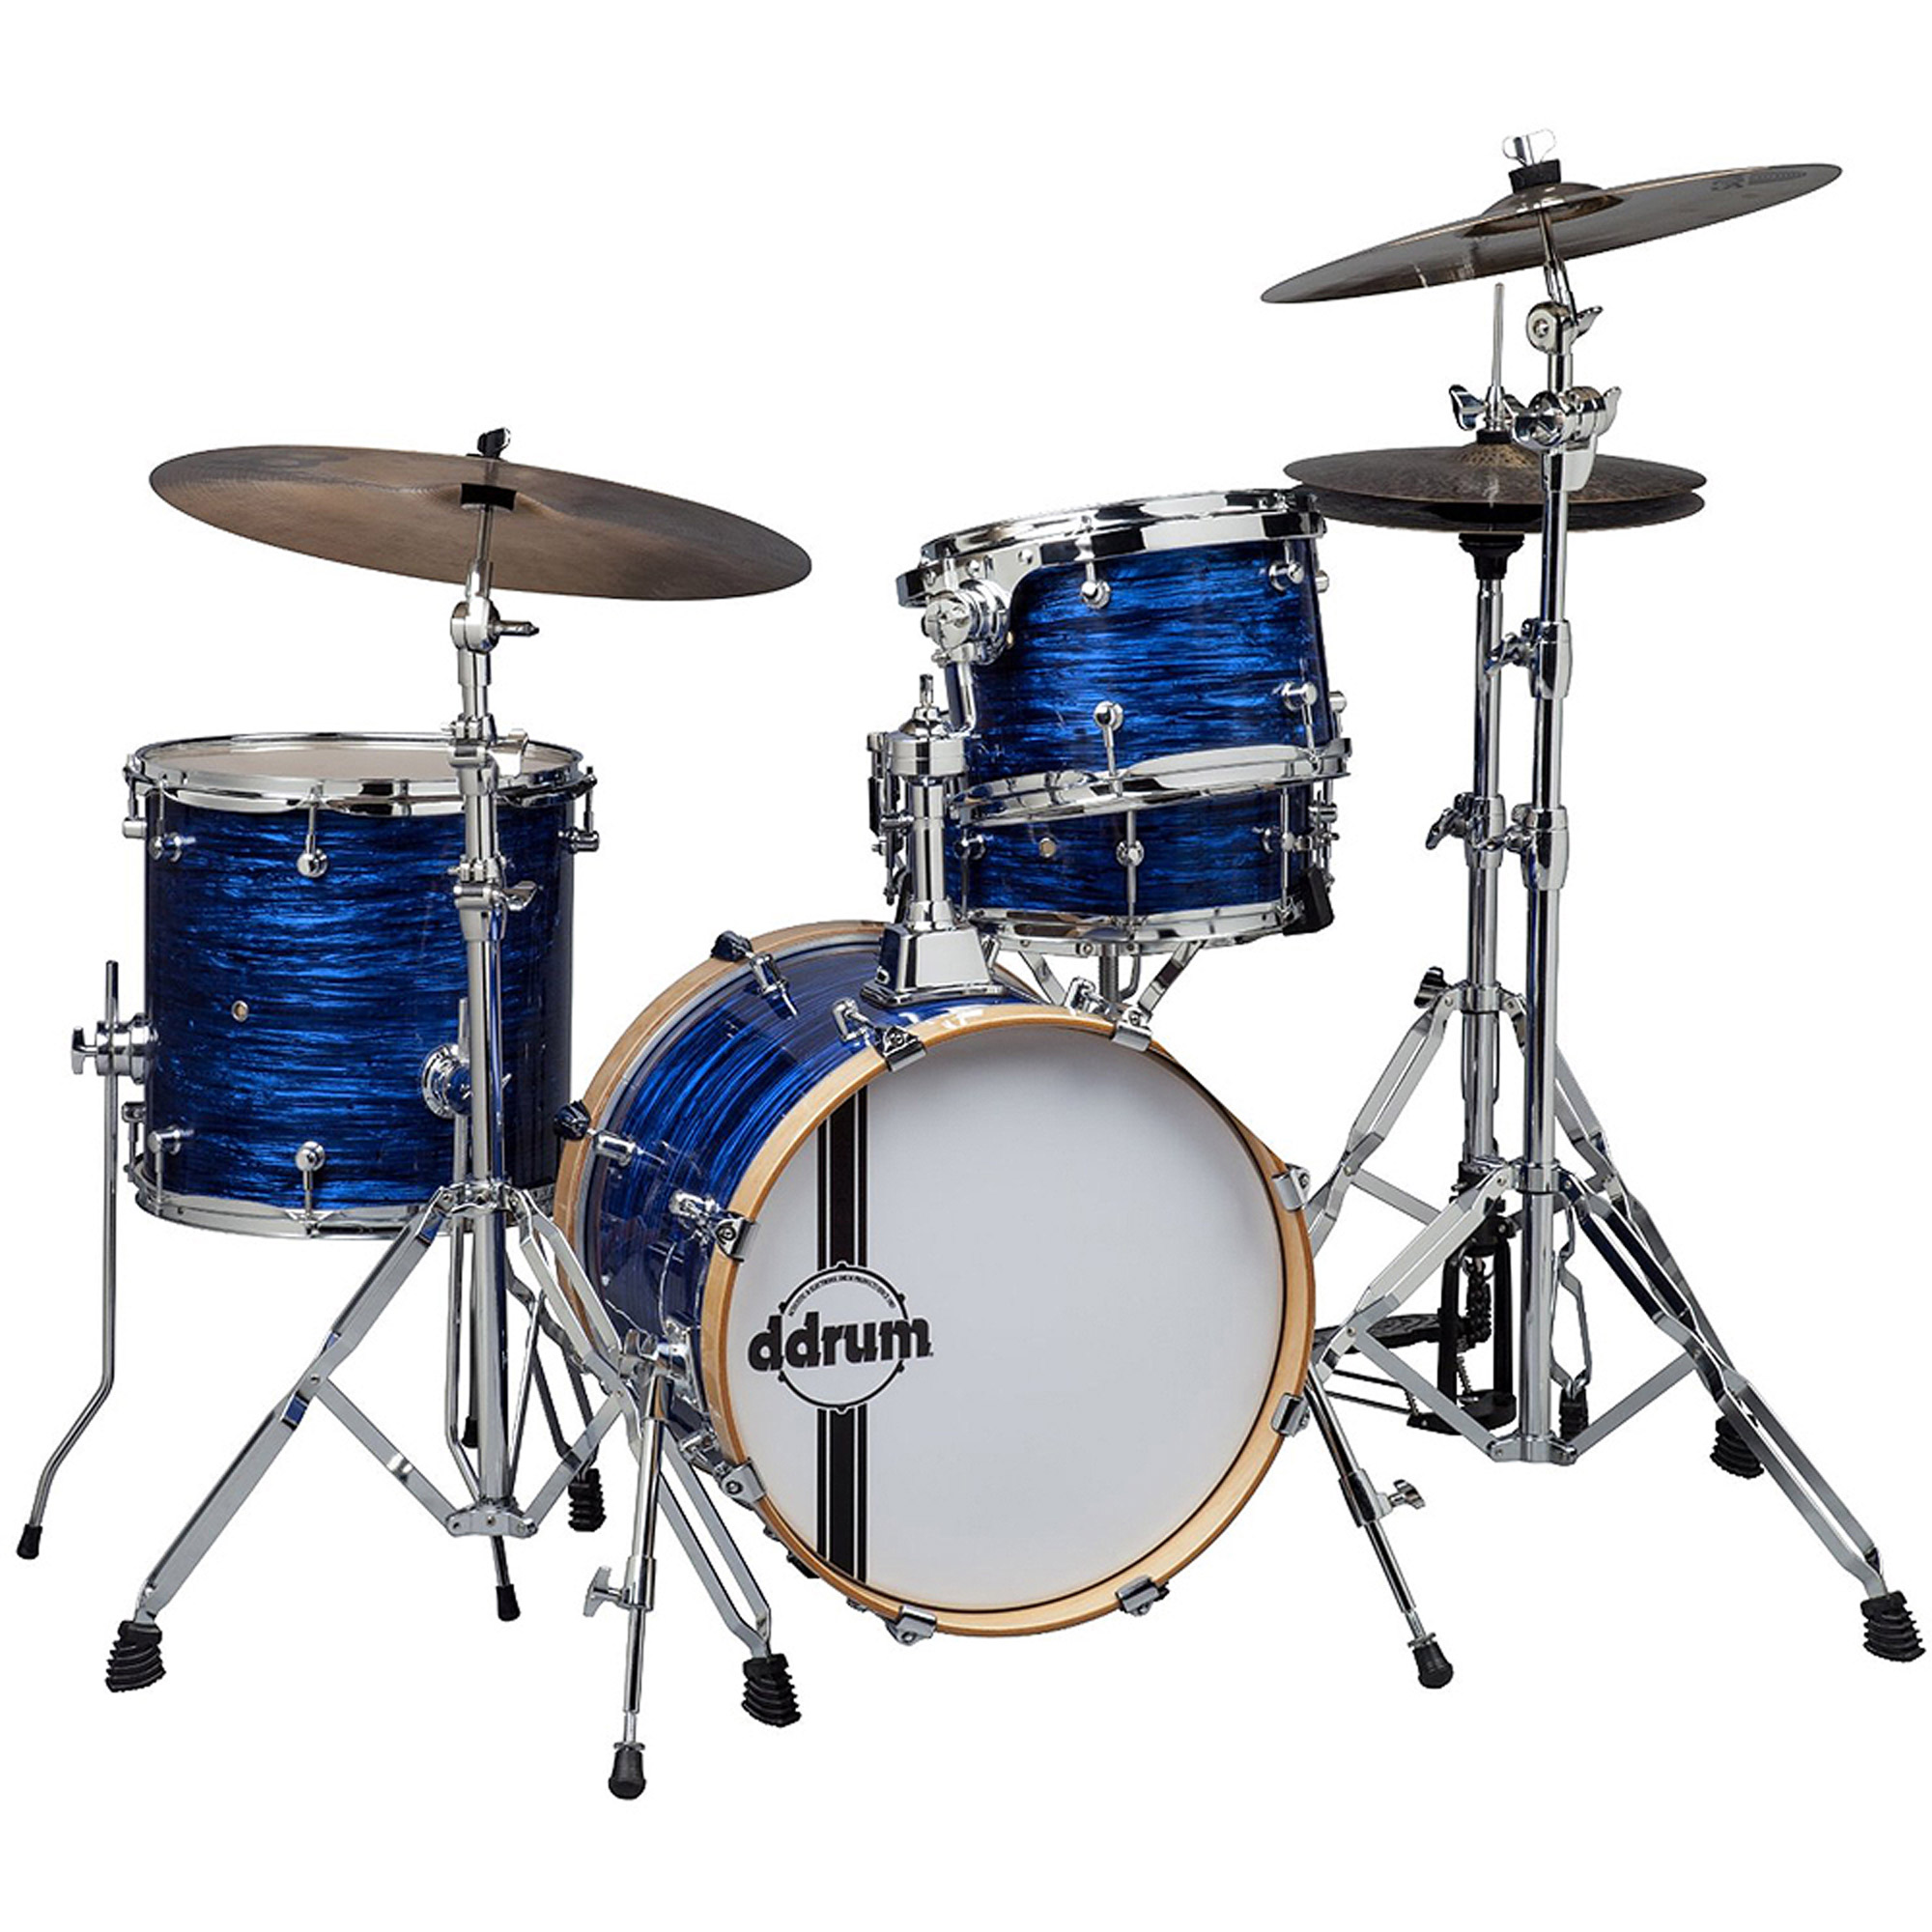 ddrum SE Flyer Bop Kit 4-Piece Shell Pack Blue Pearl by ddrum